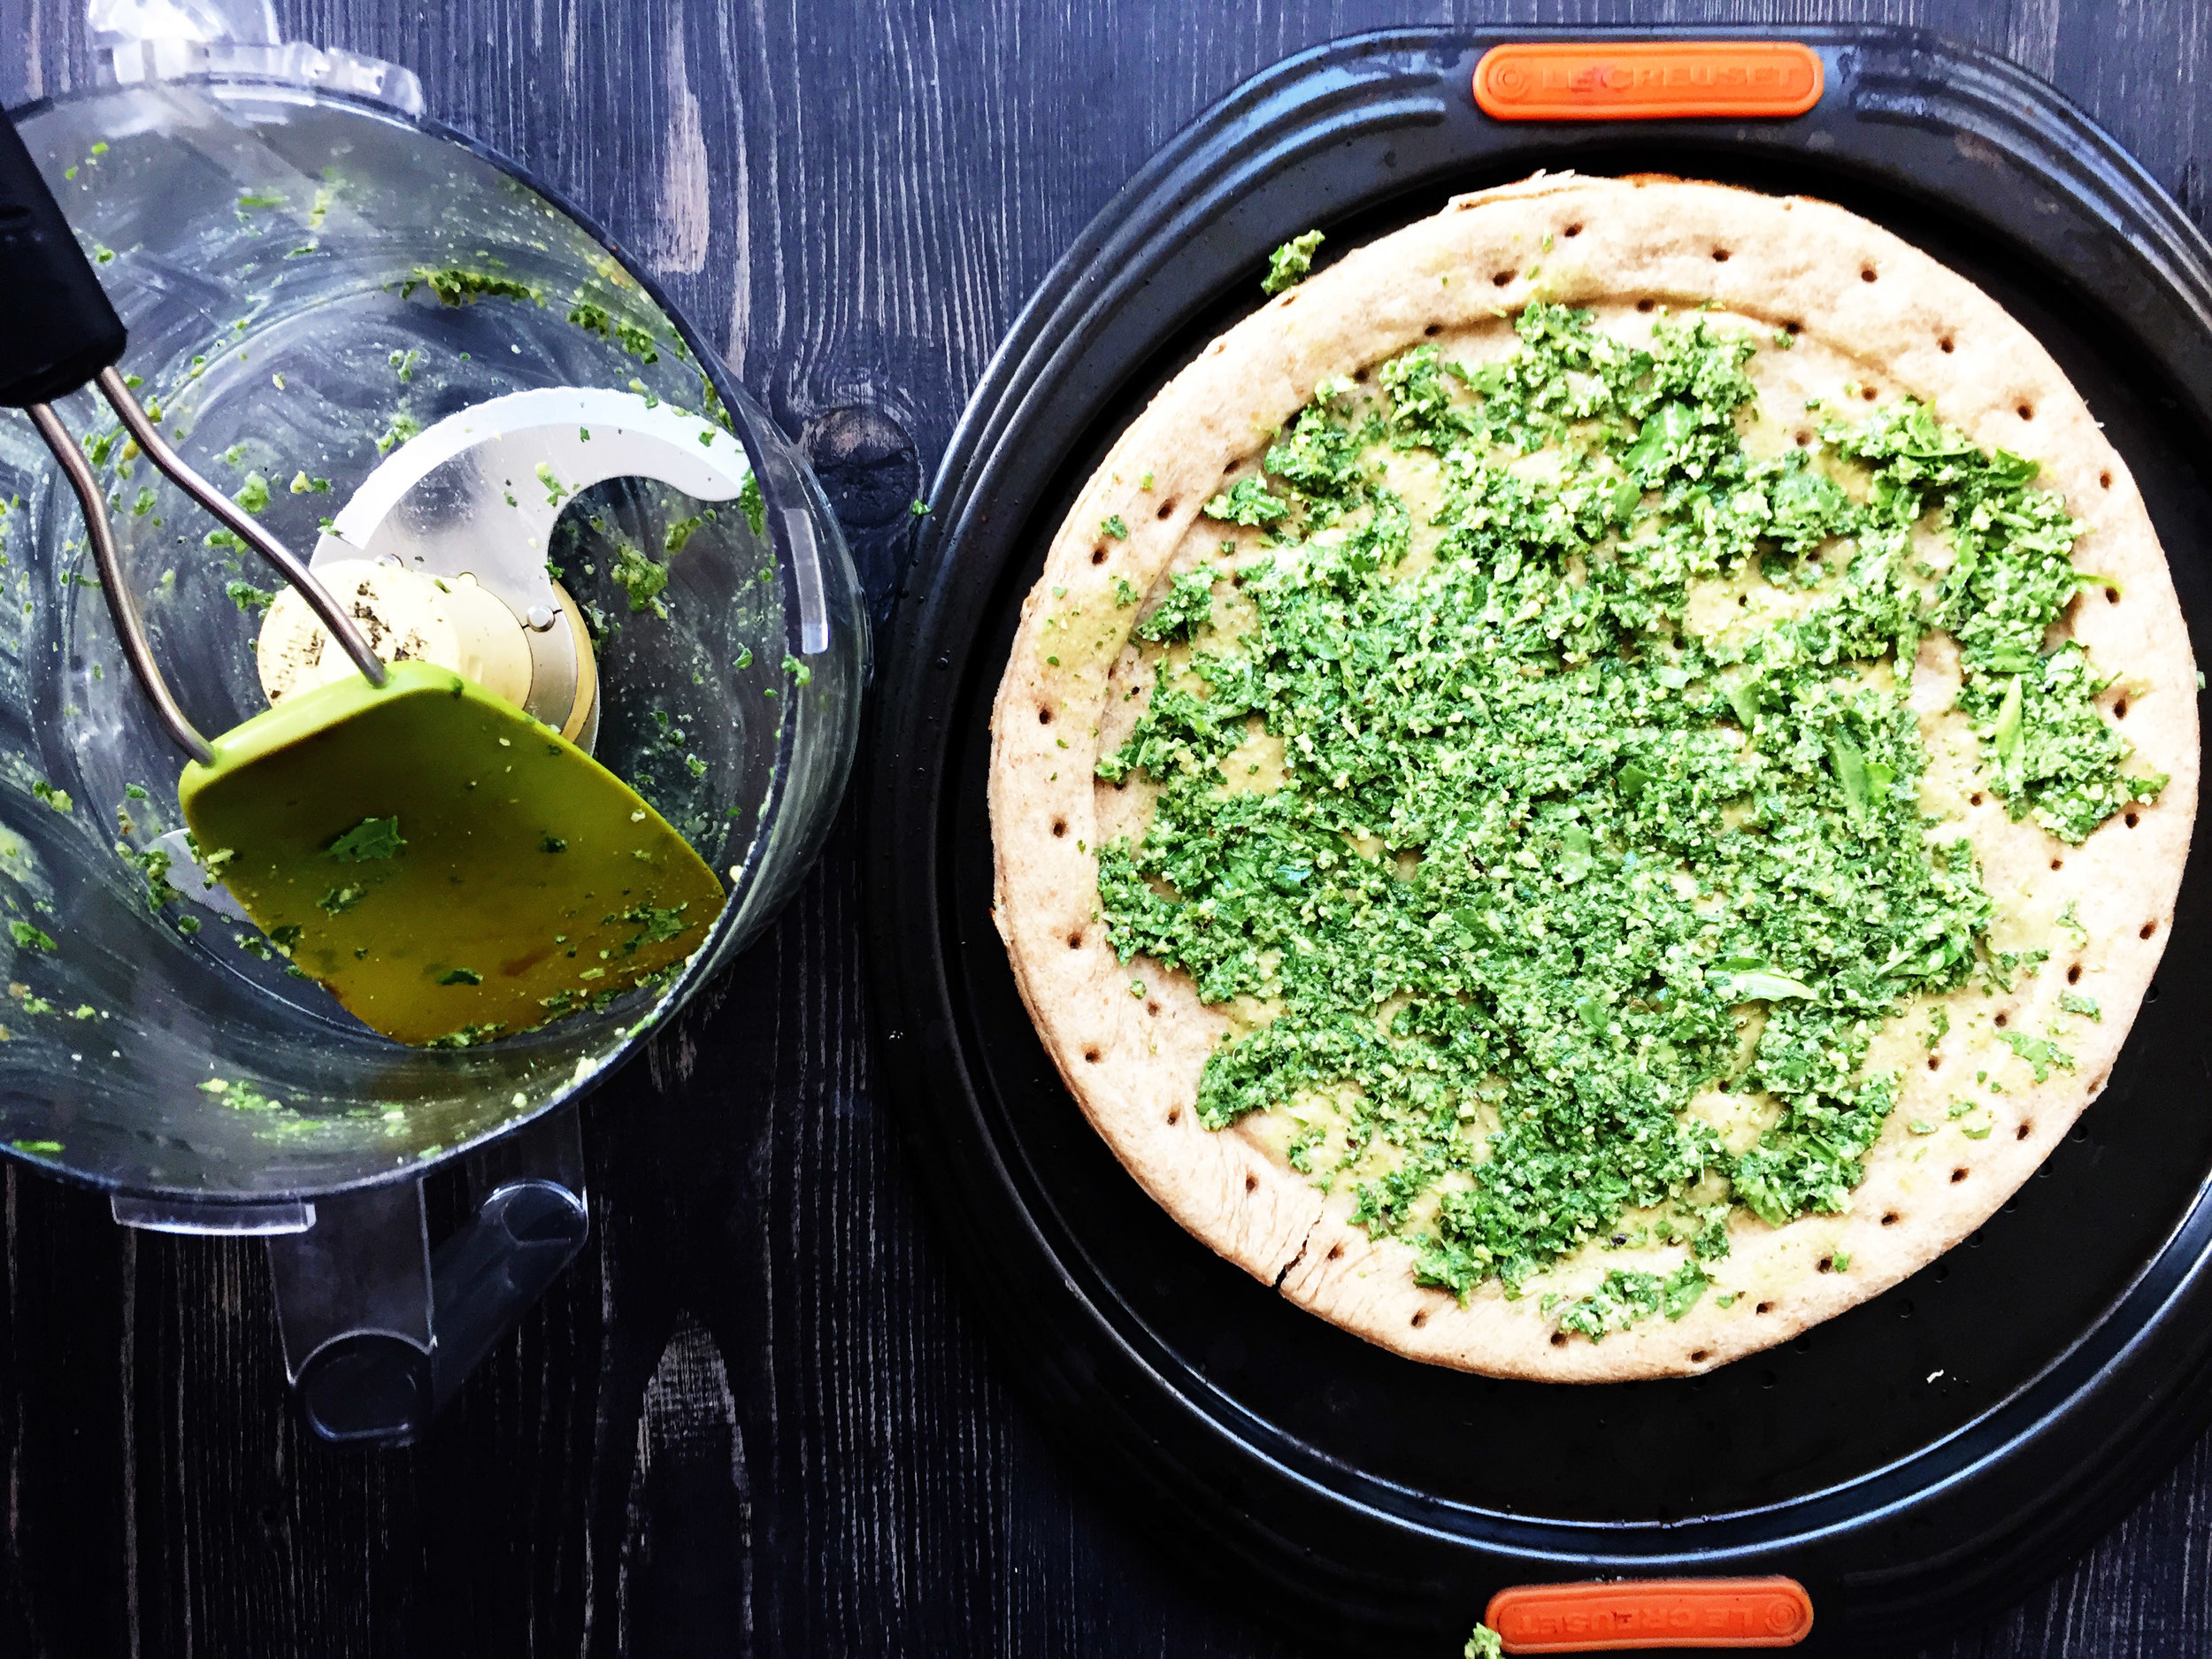 4. Take your pesto and spread it onto the pizza once it is done. We will continue to add ingredients to it. Set crust aside.